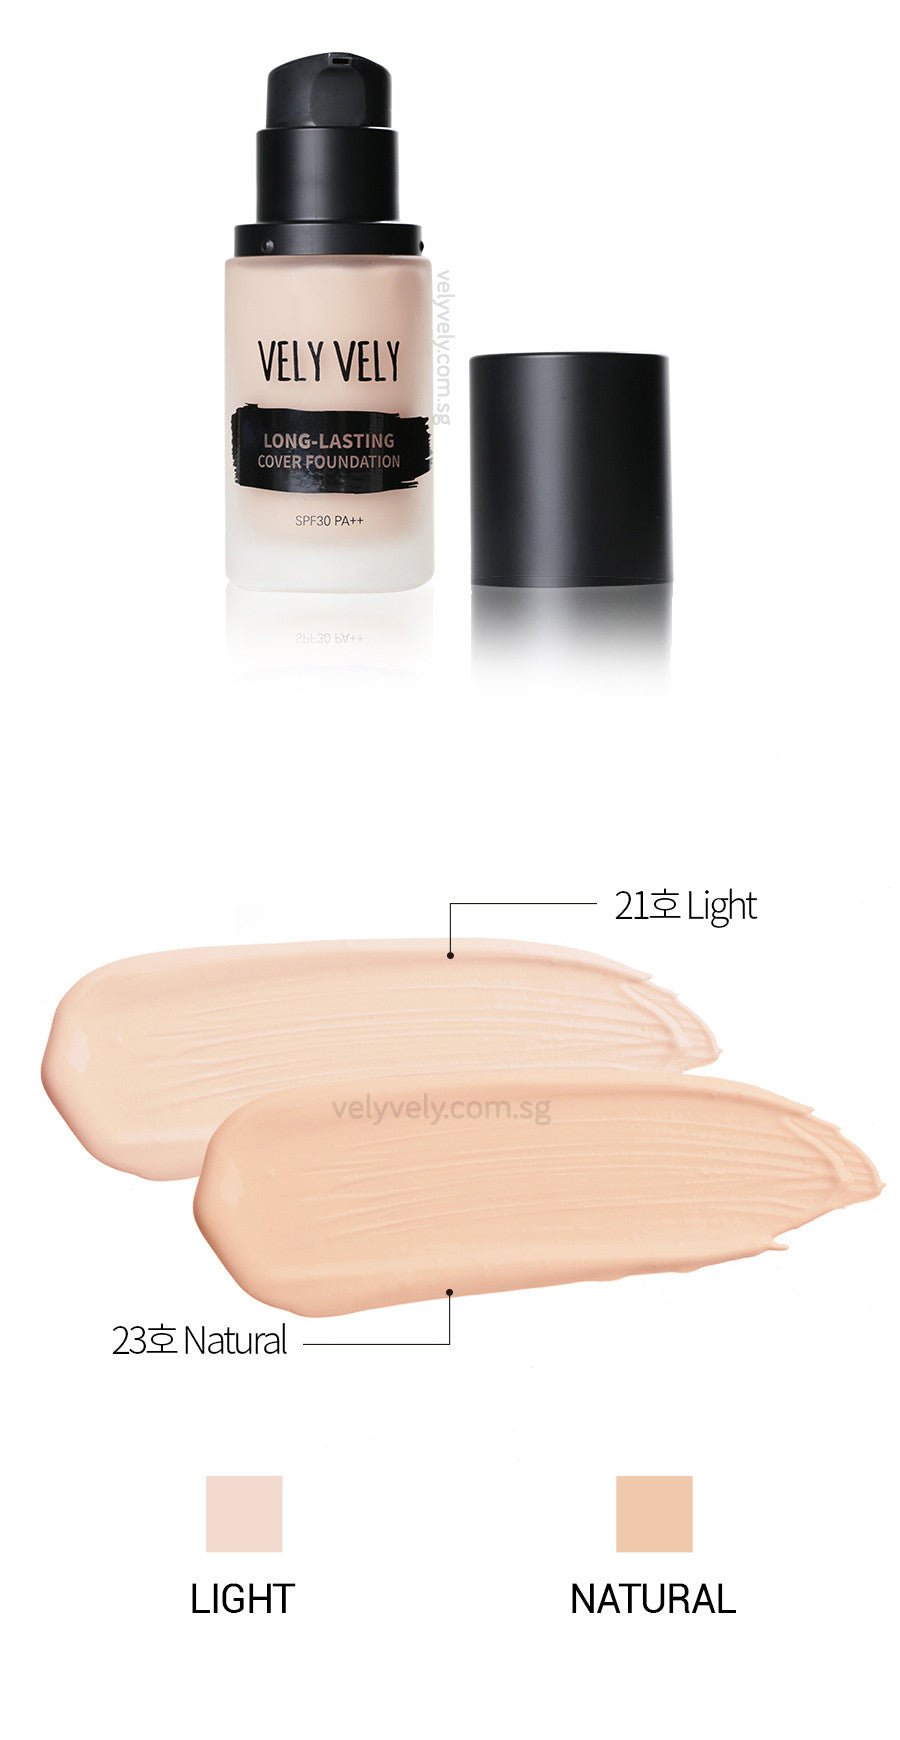 Swatches of Vely Vely Long-Lasting Cover foundation in Light #21 and Natural #21